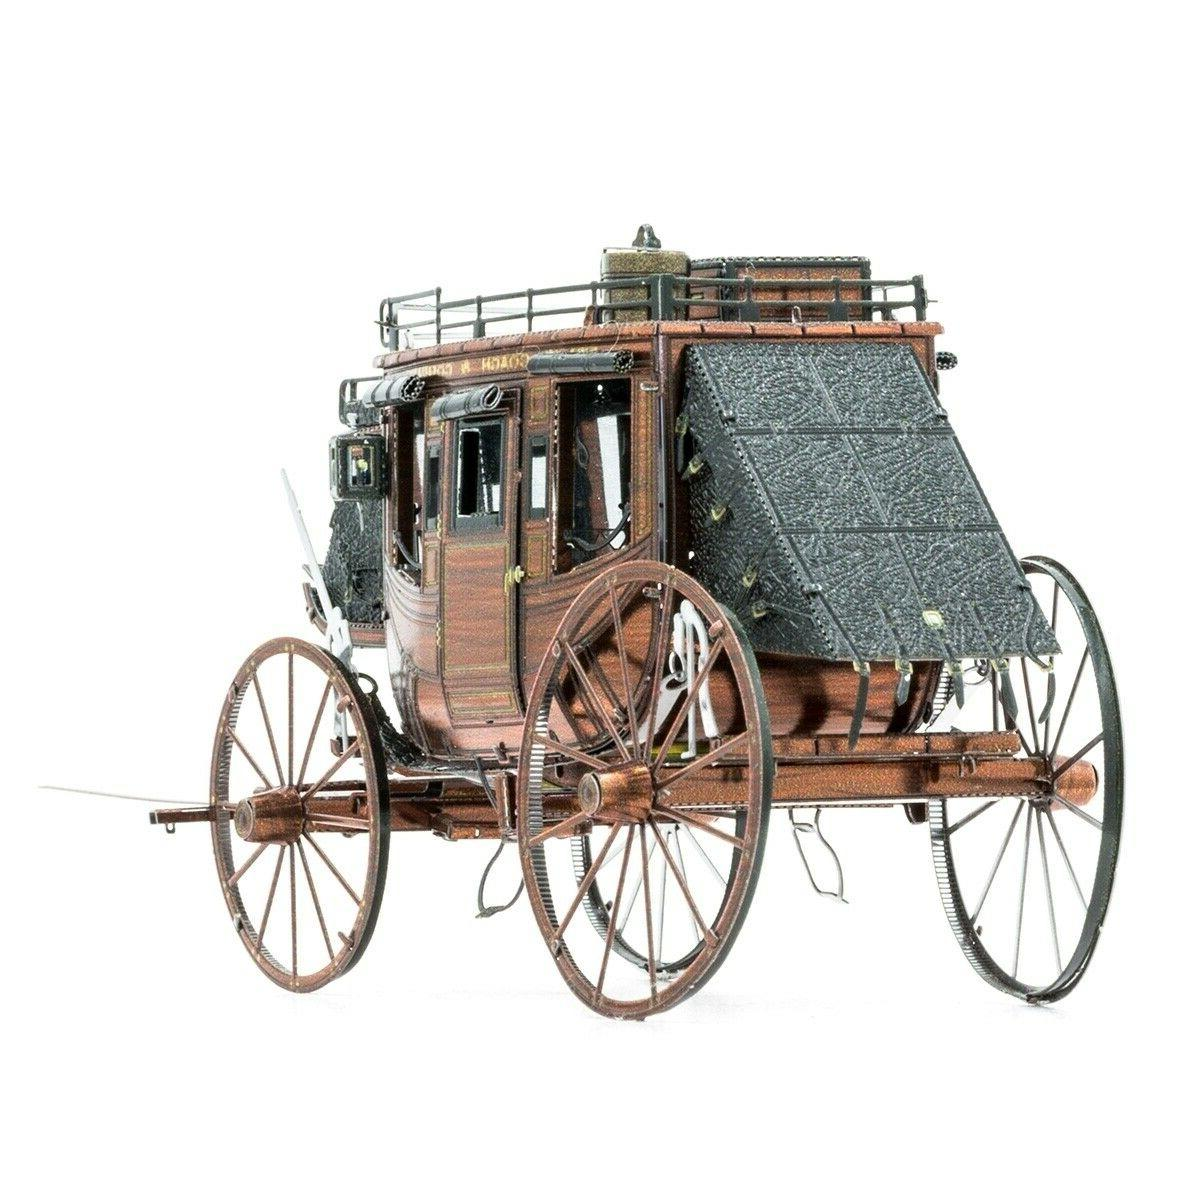 Fascinations Metal West Stagecoach 3D Puzzle Kit MMS189